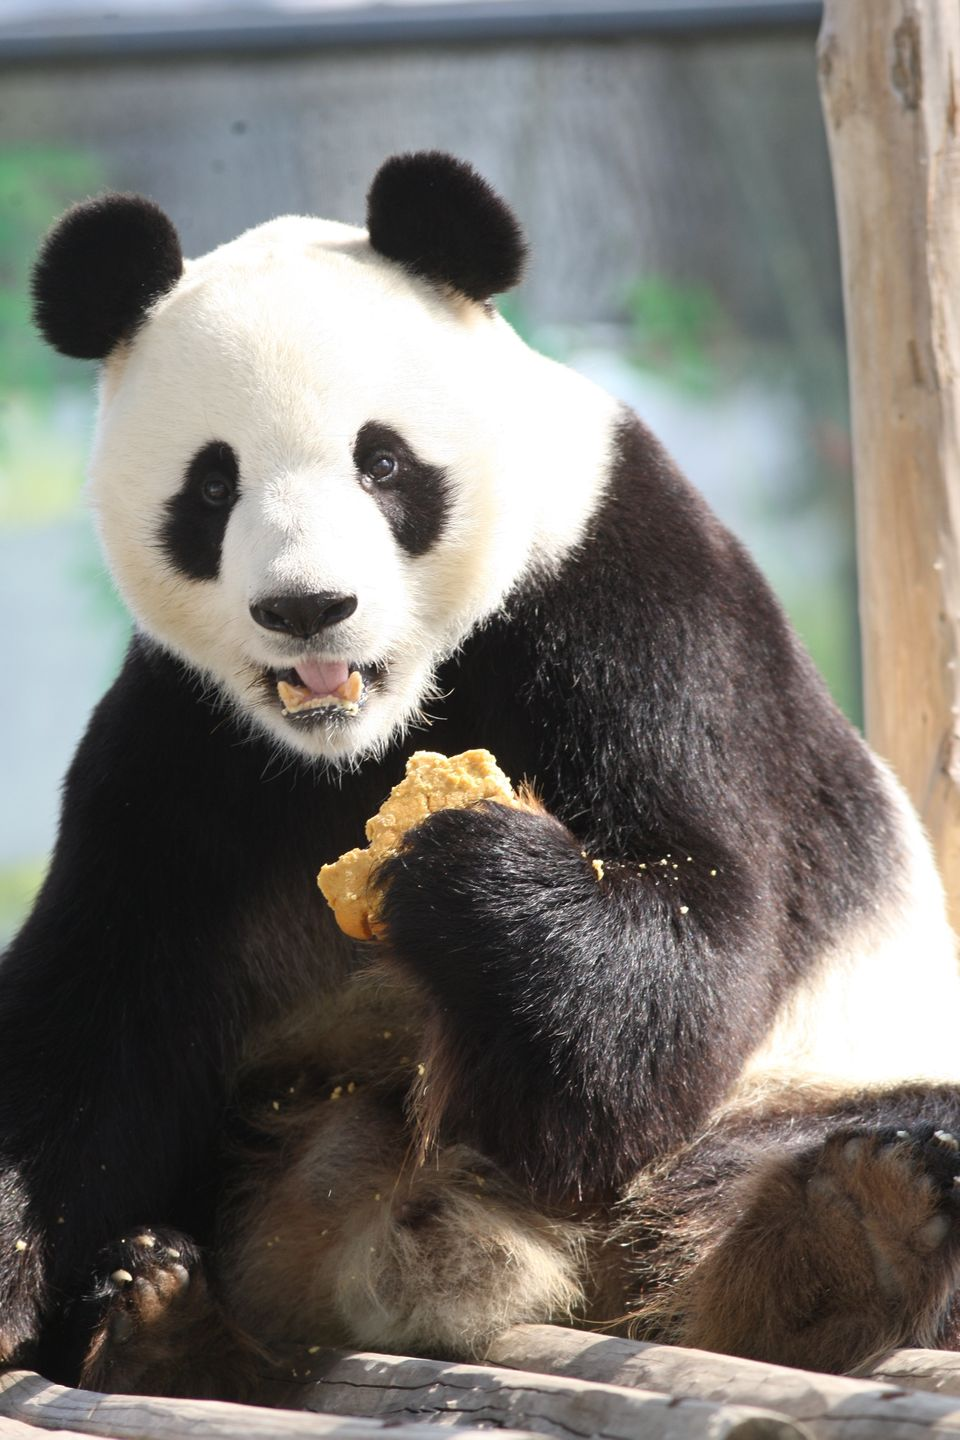 YANTAI, CHINA - SEPTEMBER 19: A giant panda eats 'Mooncake' at a zoo on Mid-Autumn Day on September 19, 2013 in Yantai, Shand